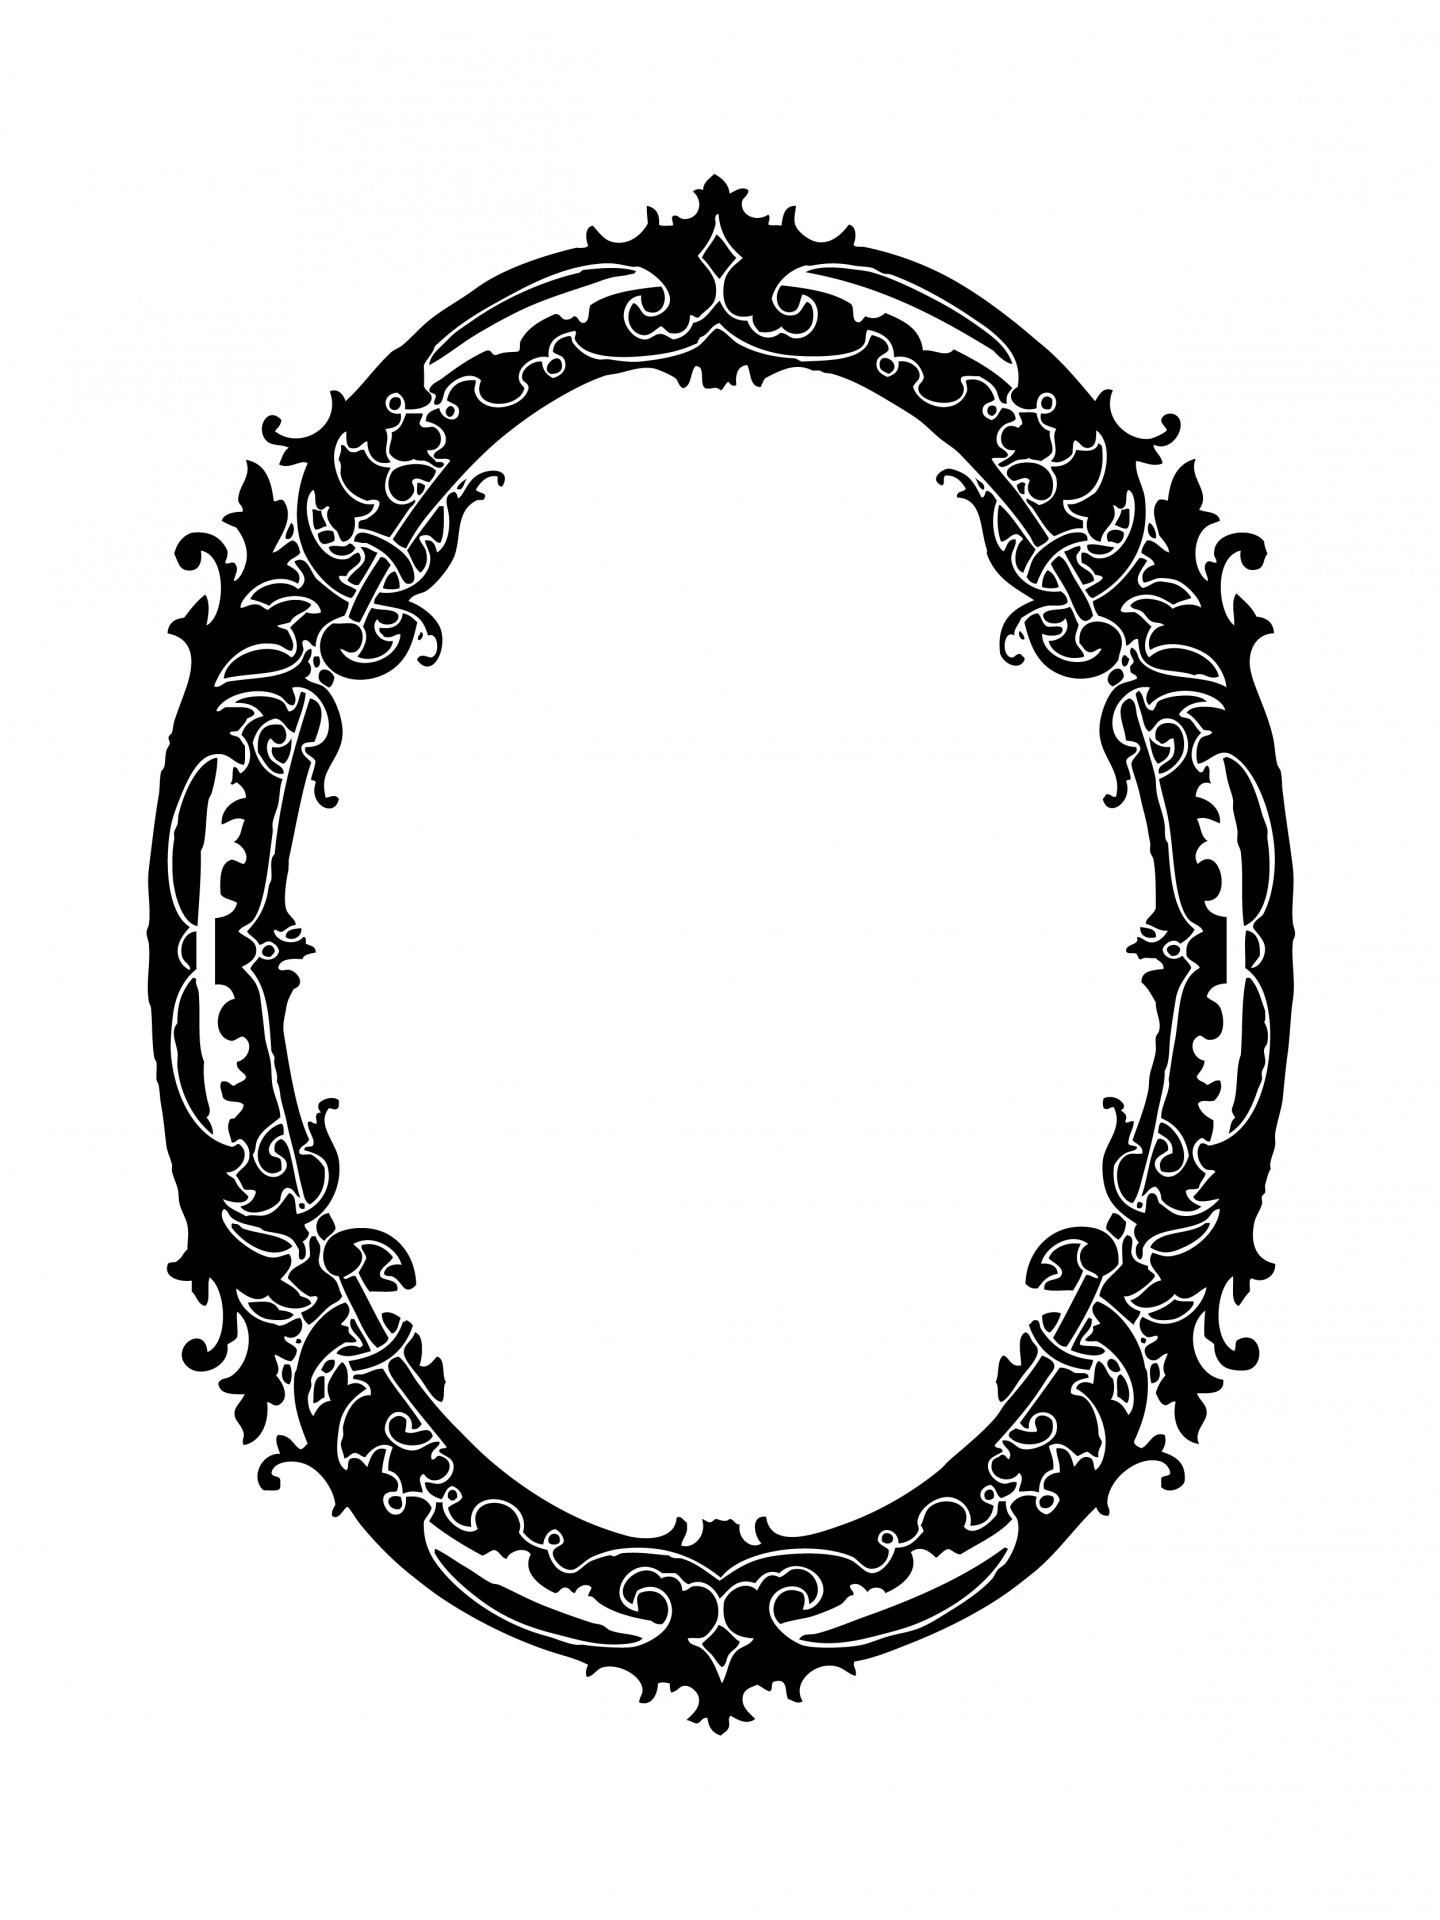 Oval Frame Decorative Clipart Free Stock Photo